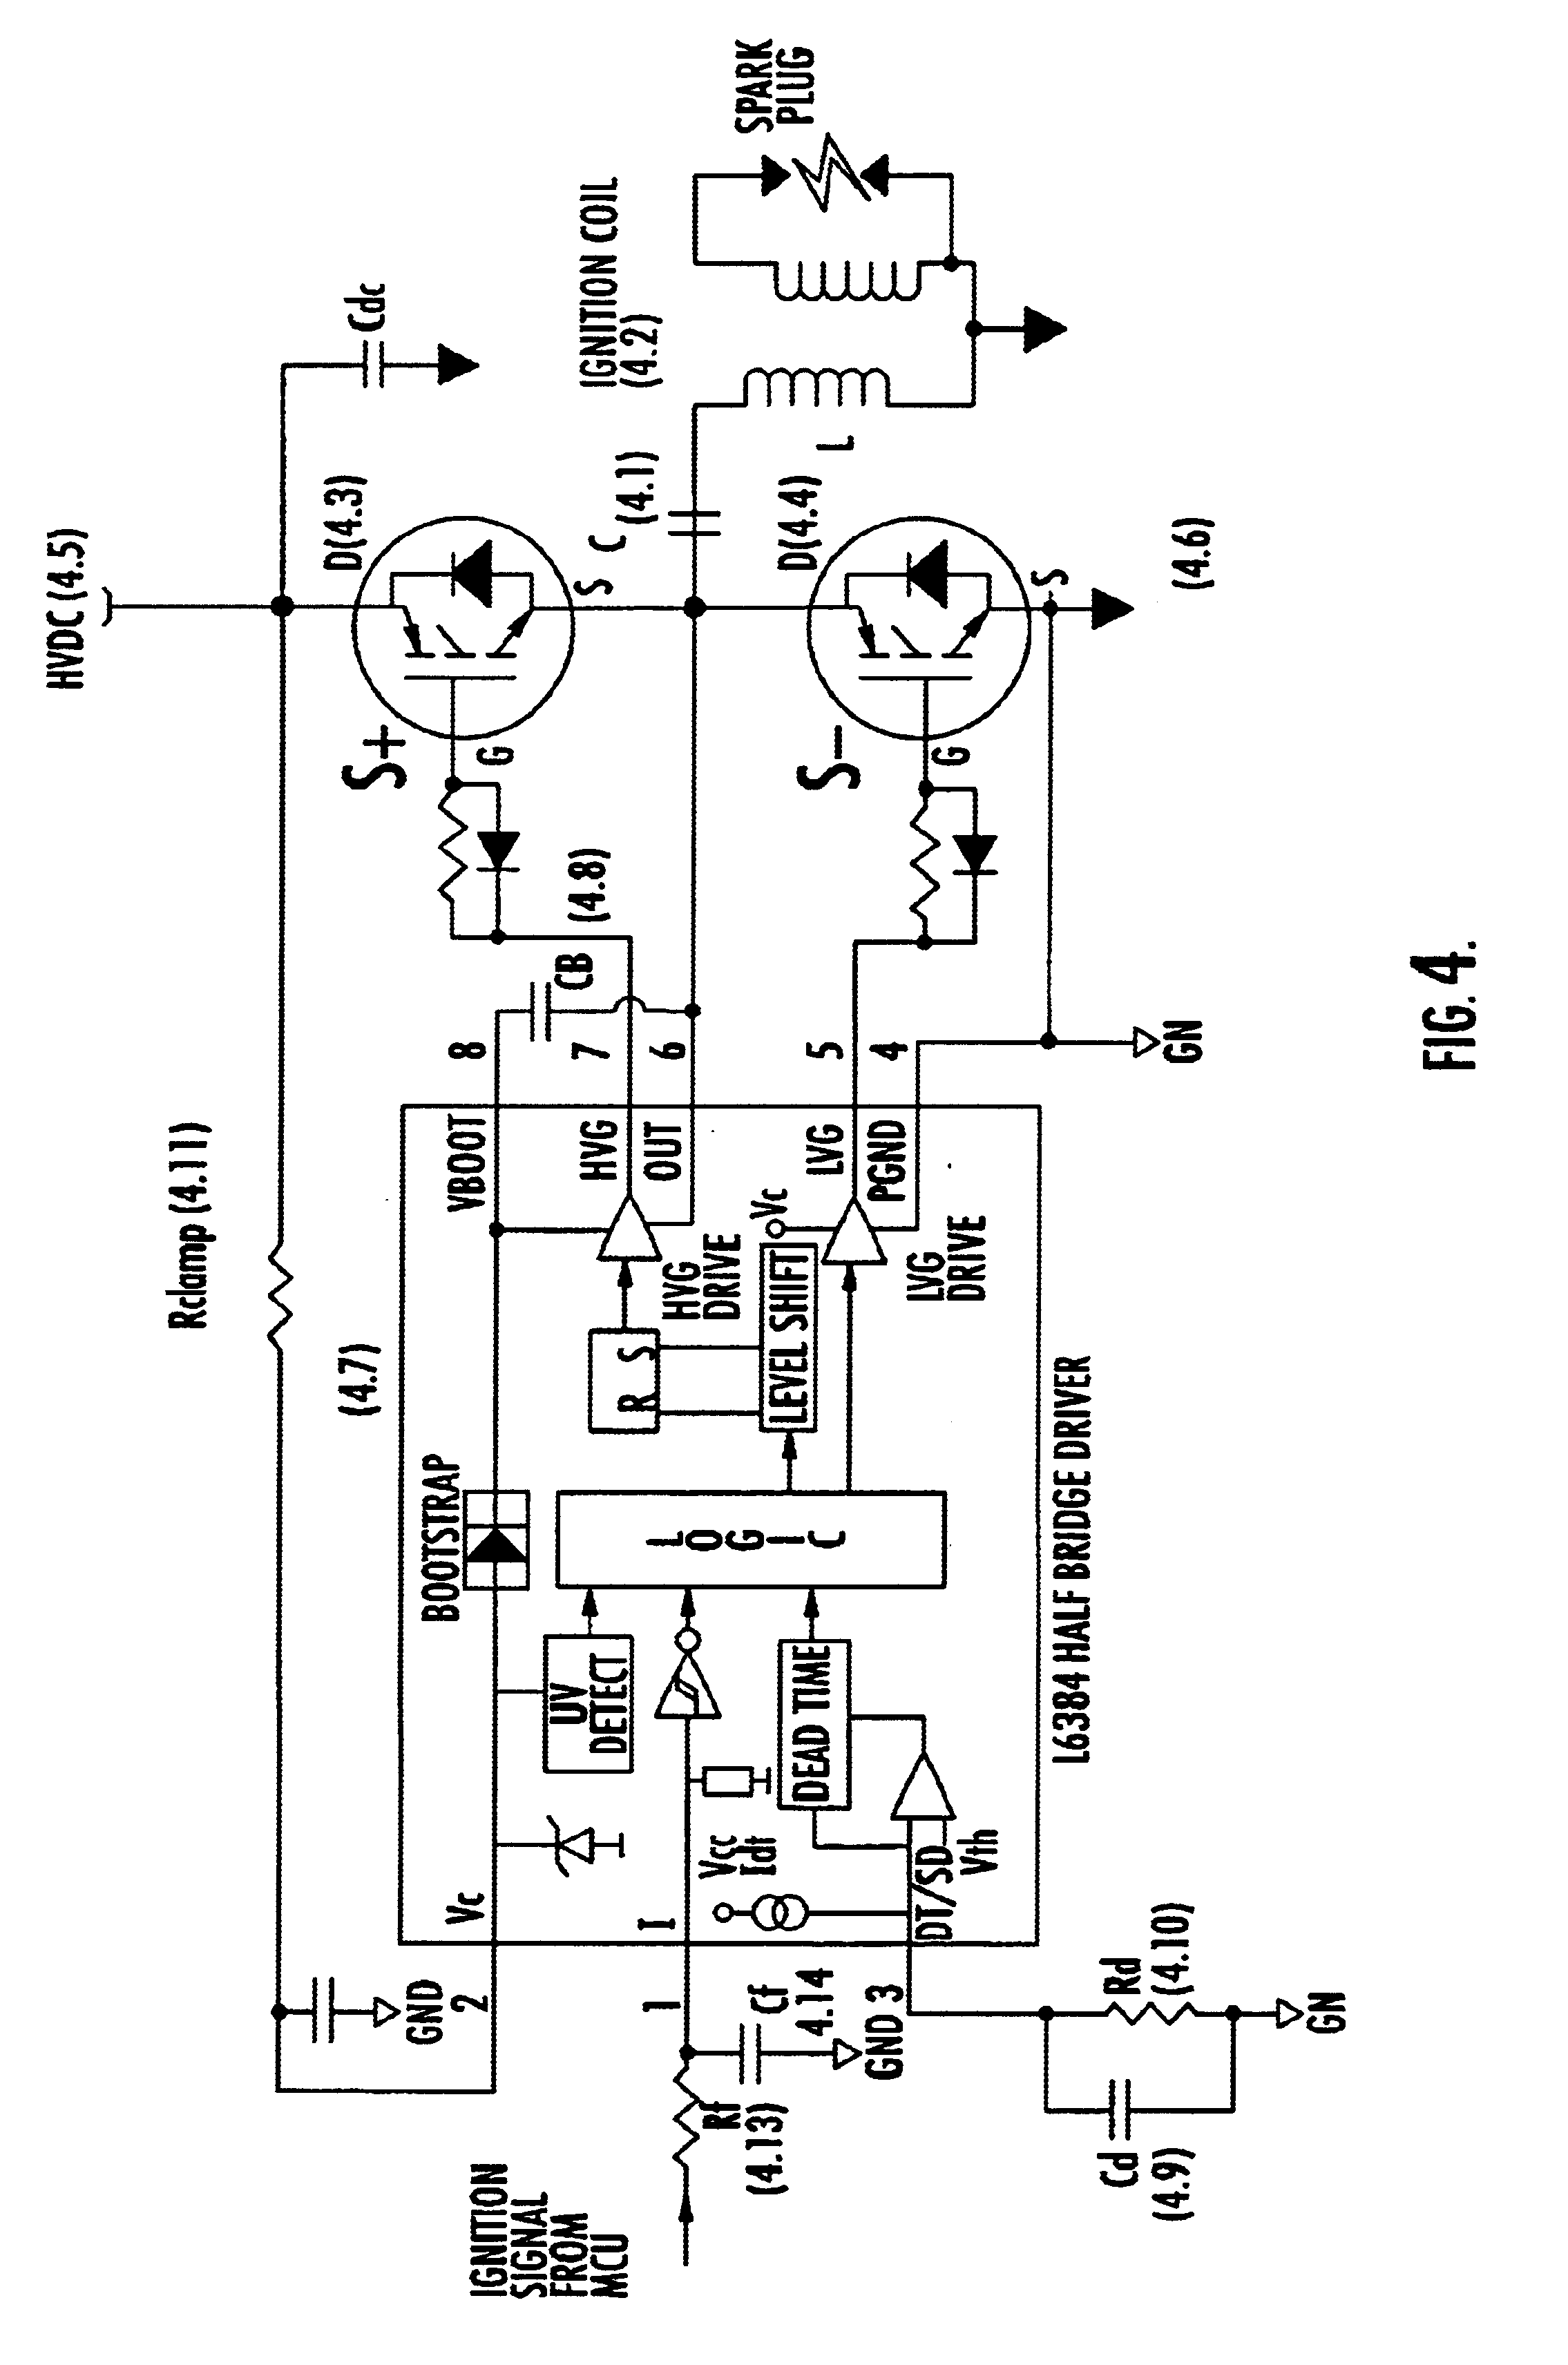 1424 moreover Charging Made Easy moreover Automatic Emergency Light Using Led Ppt besides Mag ic Pulse Generator Circuit besides Transistor Delay. on capacitor charging circuit